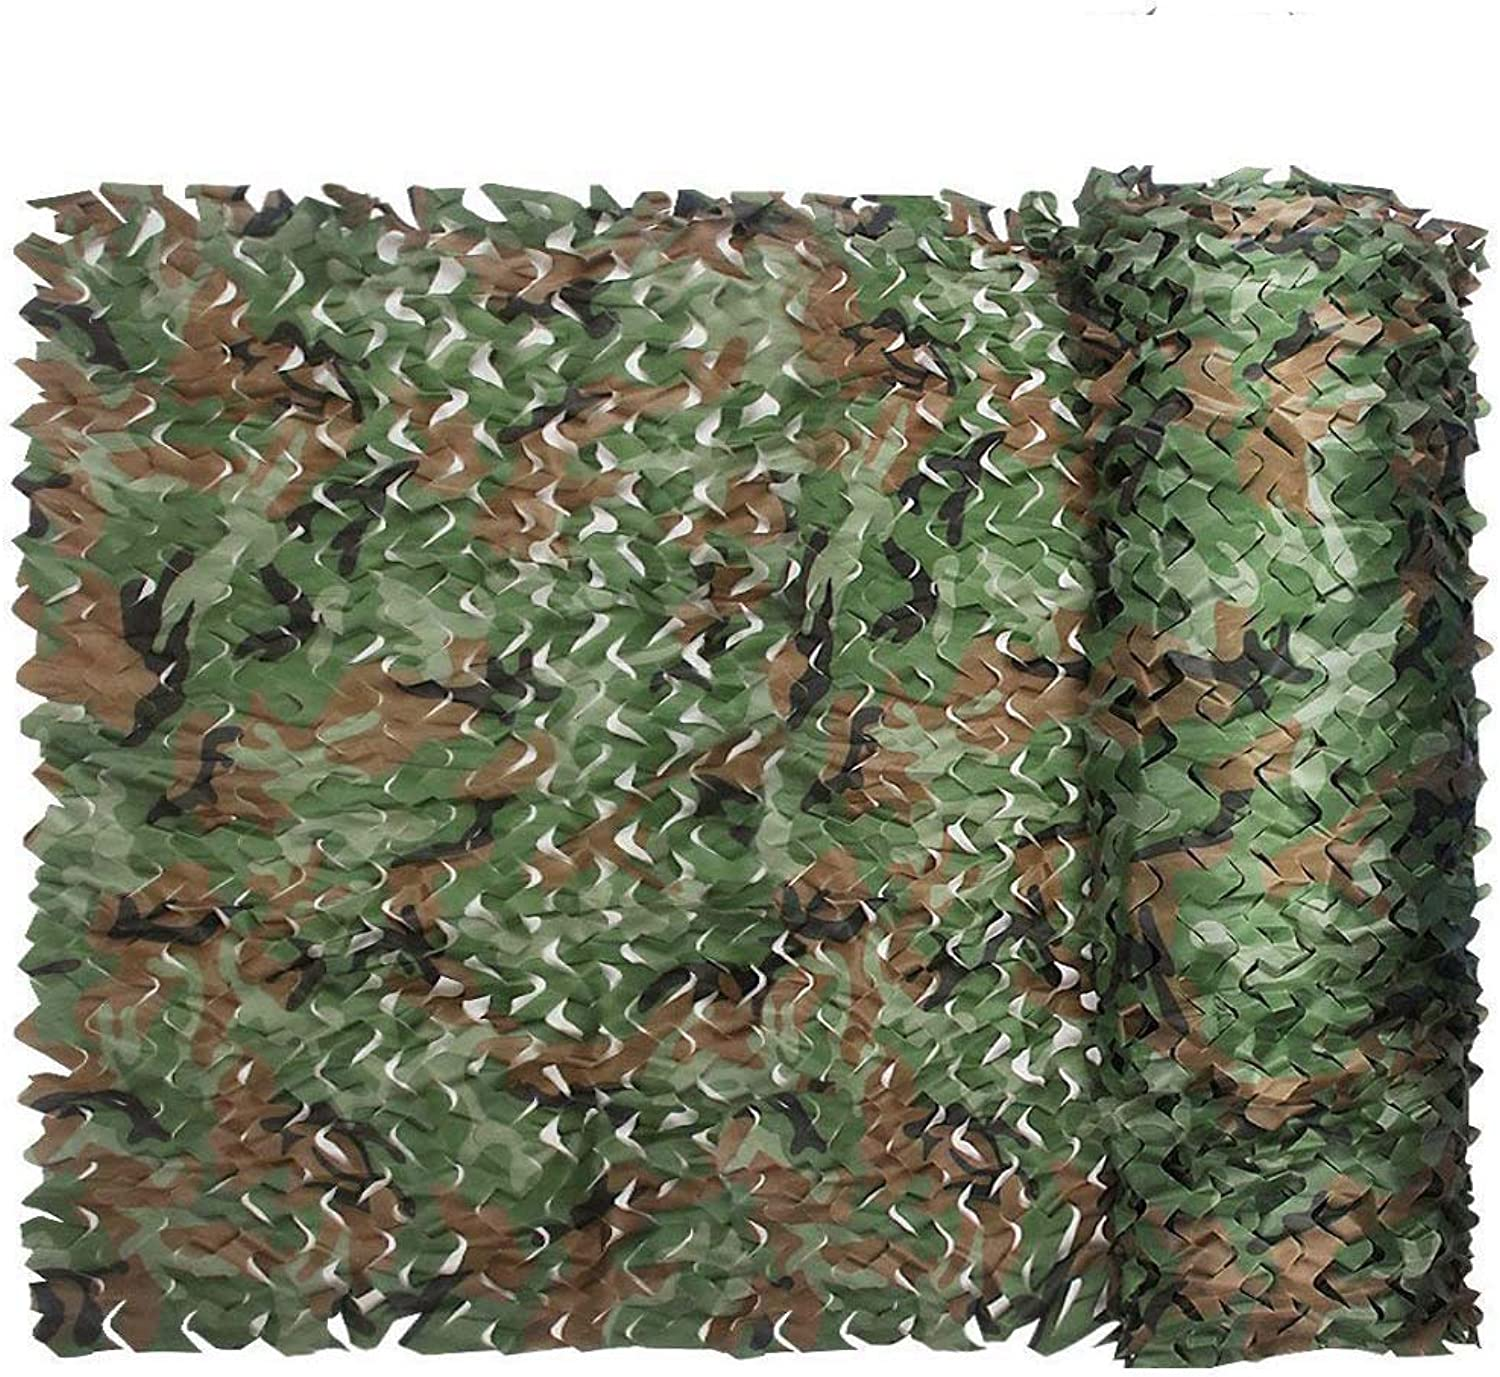 Camouflage Netting Army Military Oxford Camo Fabric Net Car Covering Tent Hunting Jungle Cover